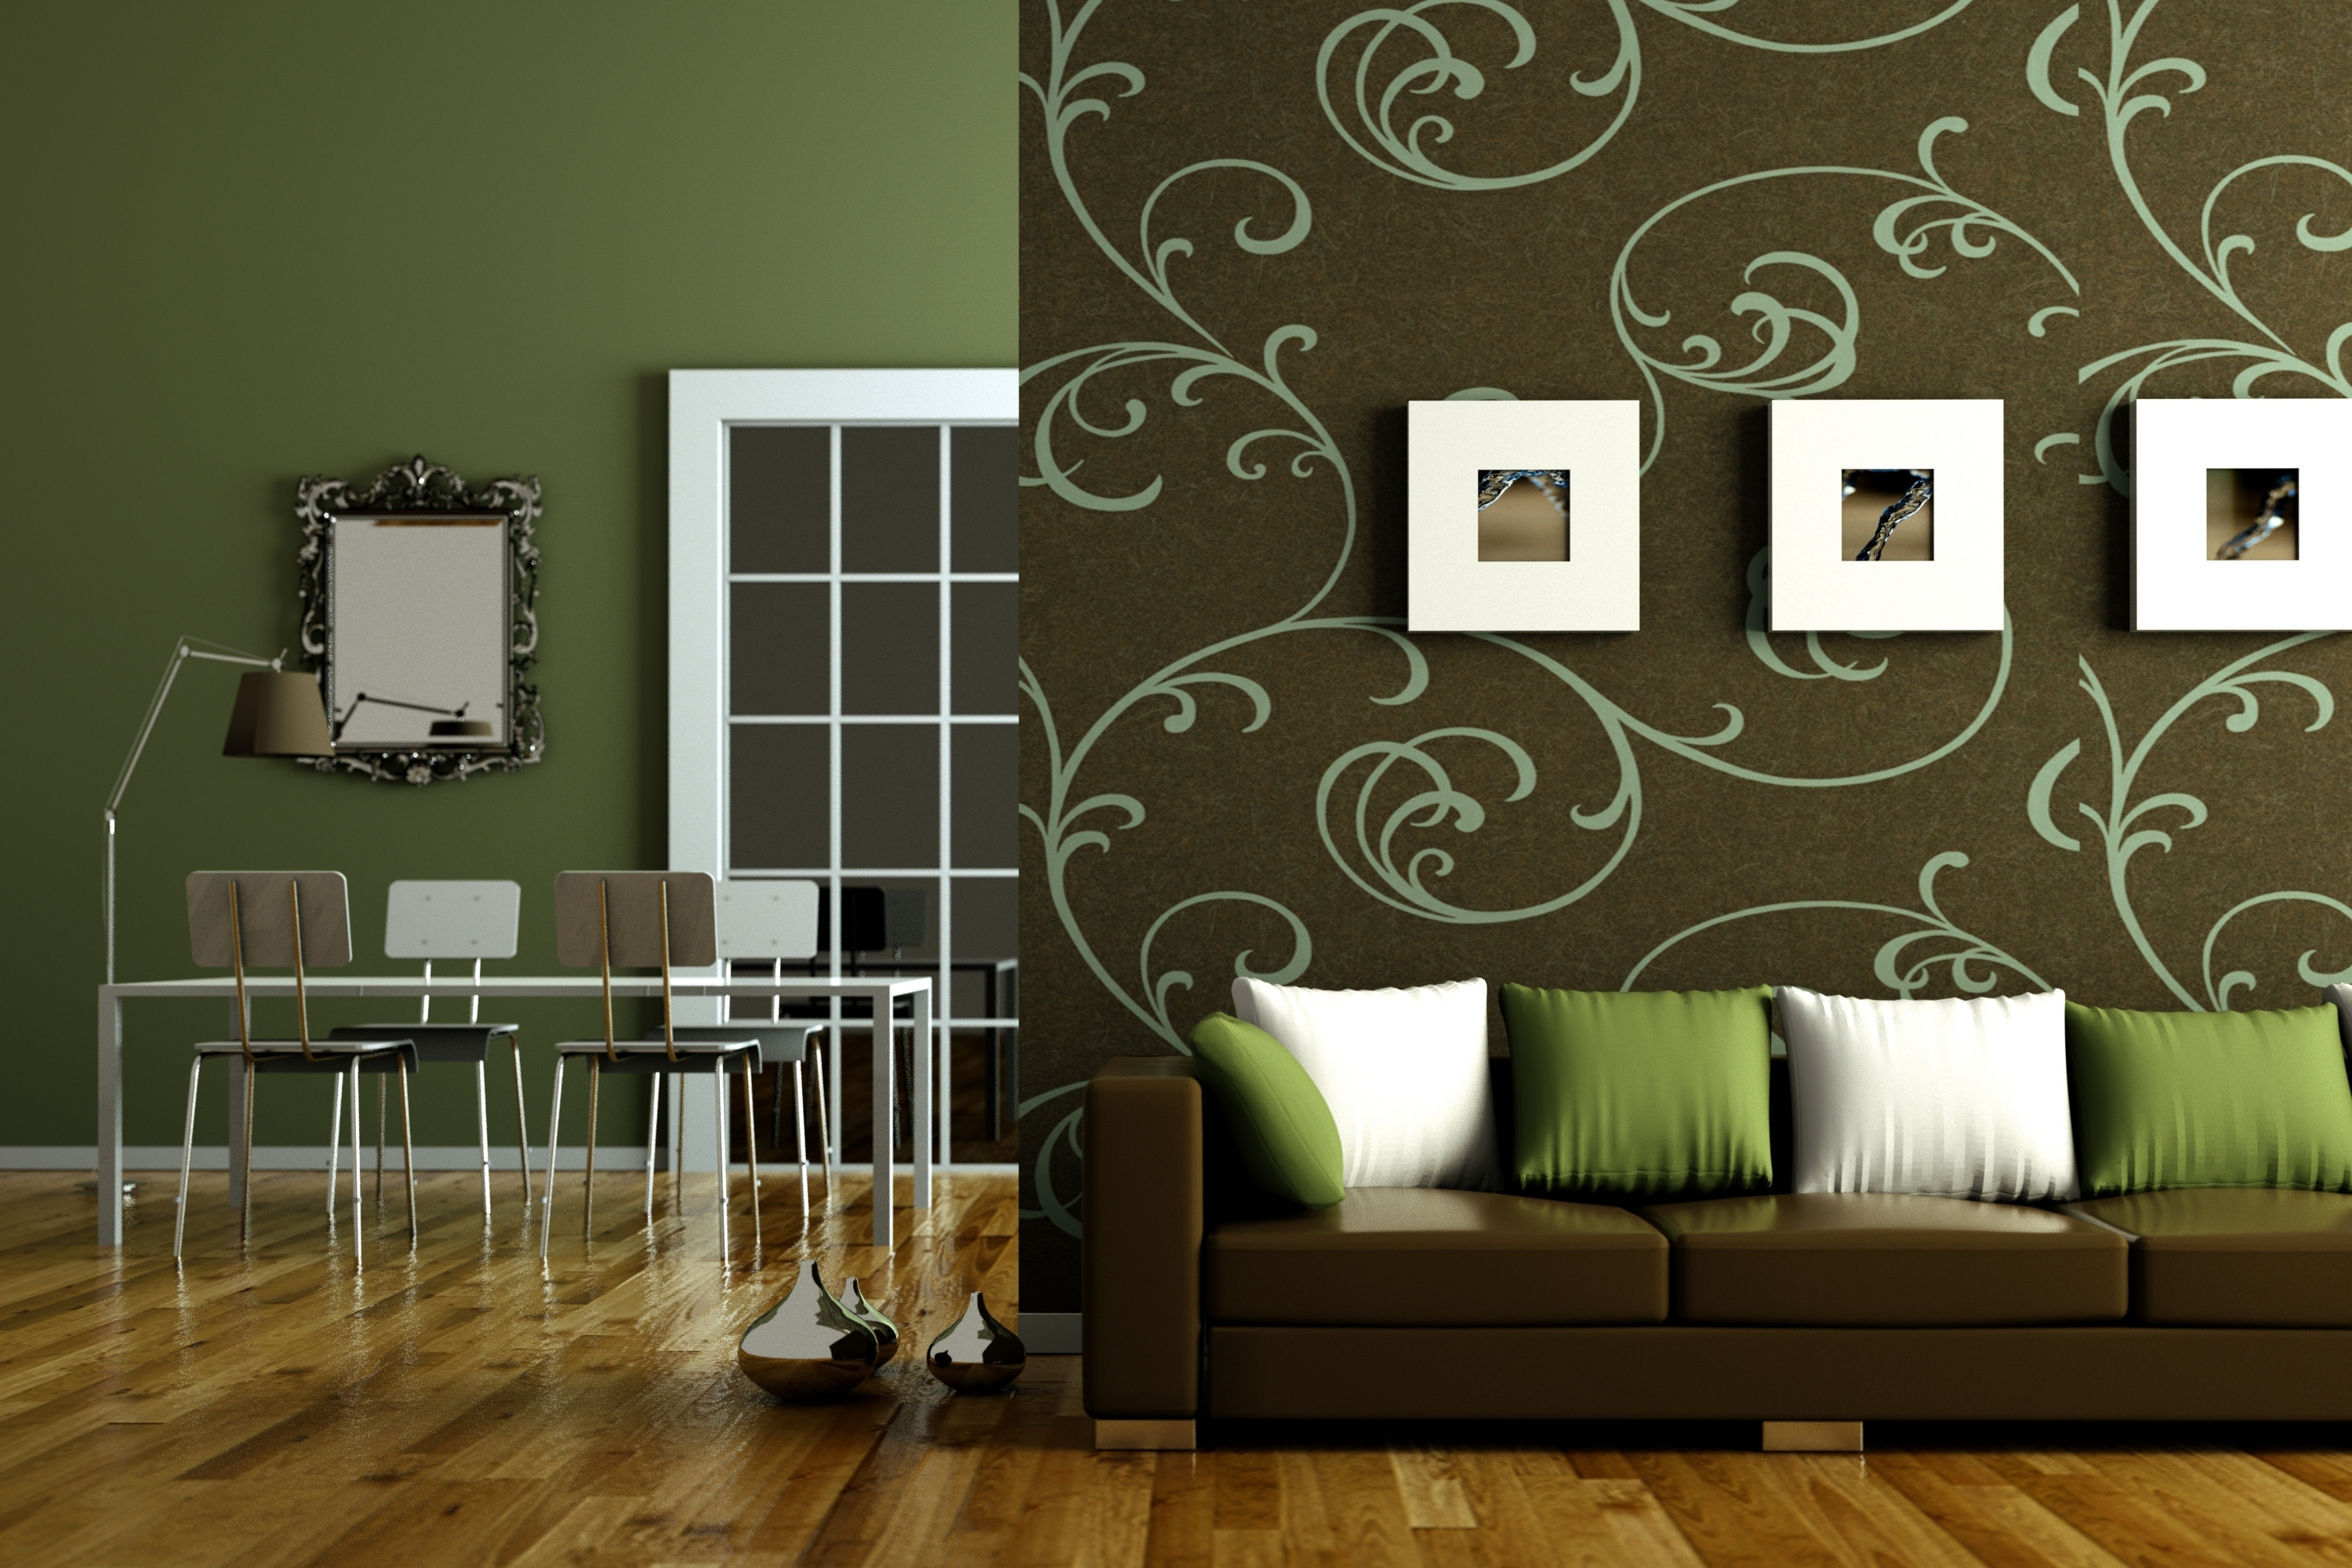 Surprising wallpaper design for living room homesfeed - Design your living room ...